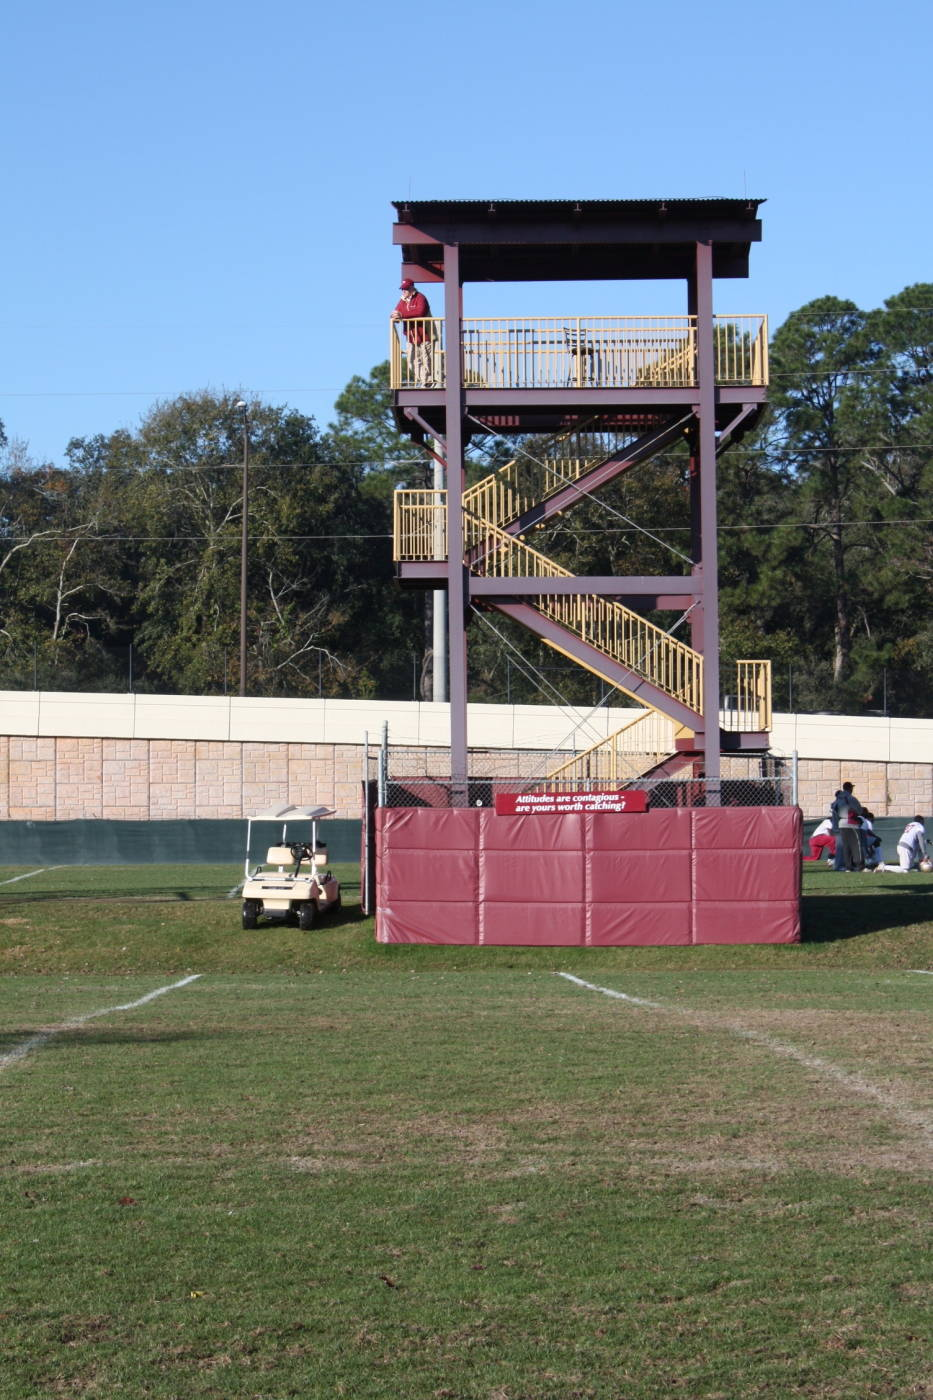 Coach Bowden up in his tower overlooking the practice fields